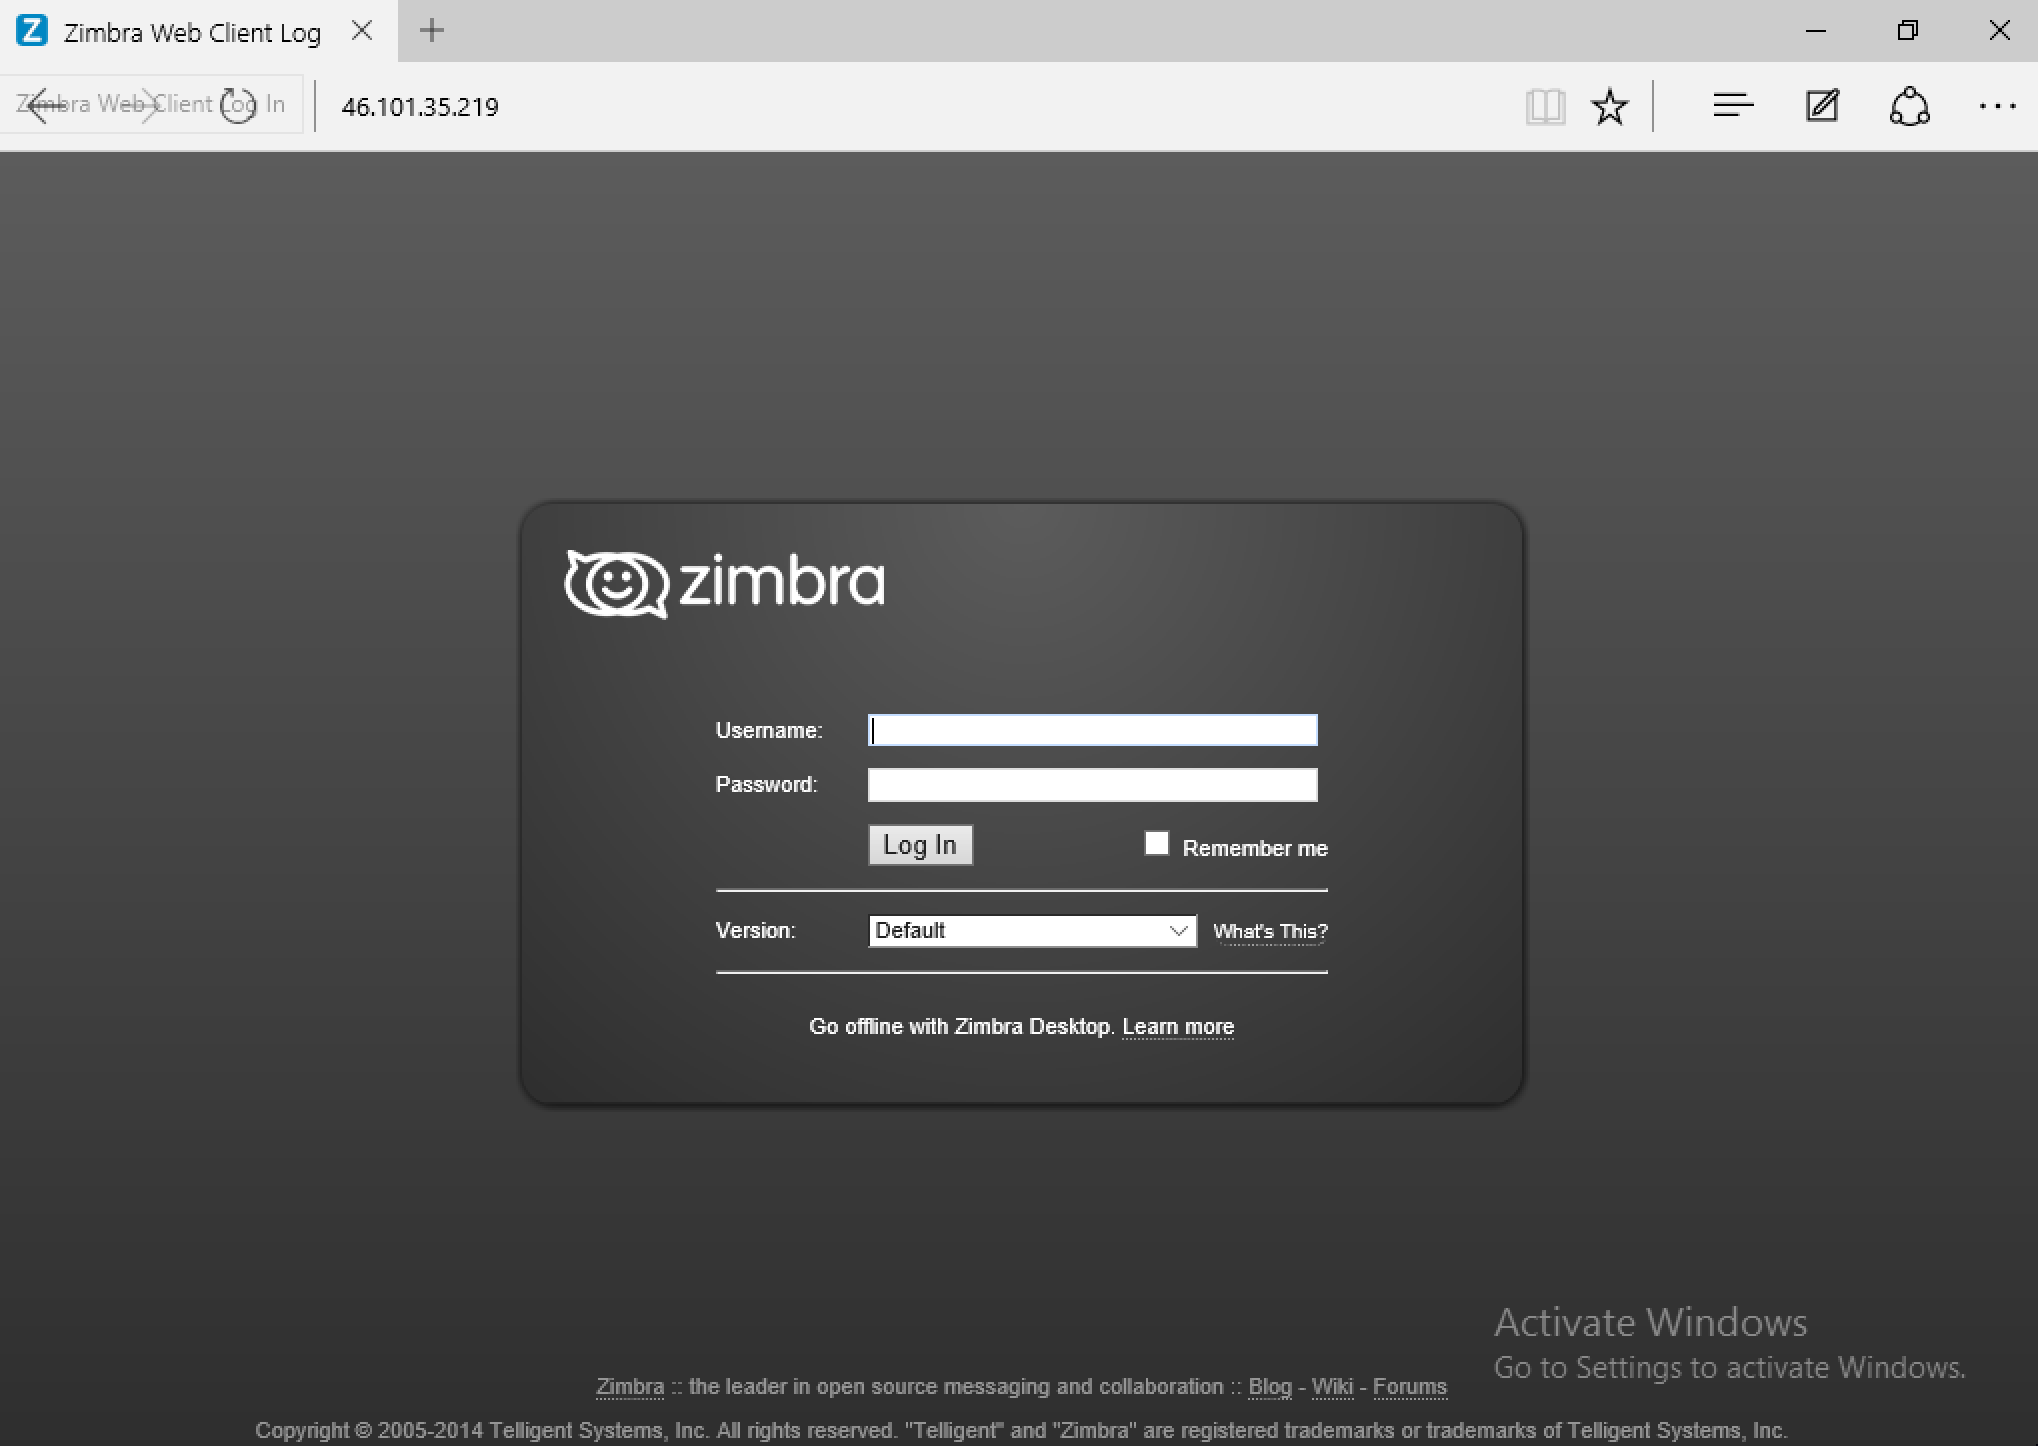 Zimbra-webclient-windows10-7.2.7-001.png